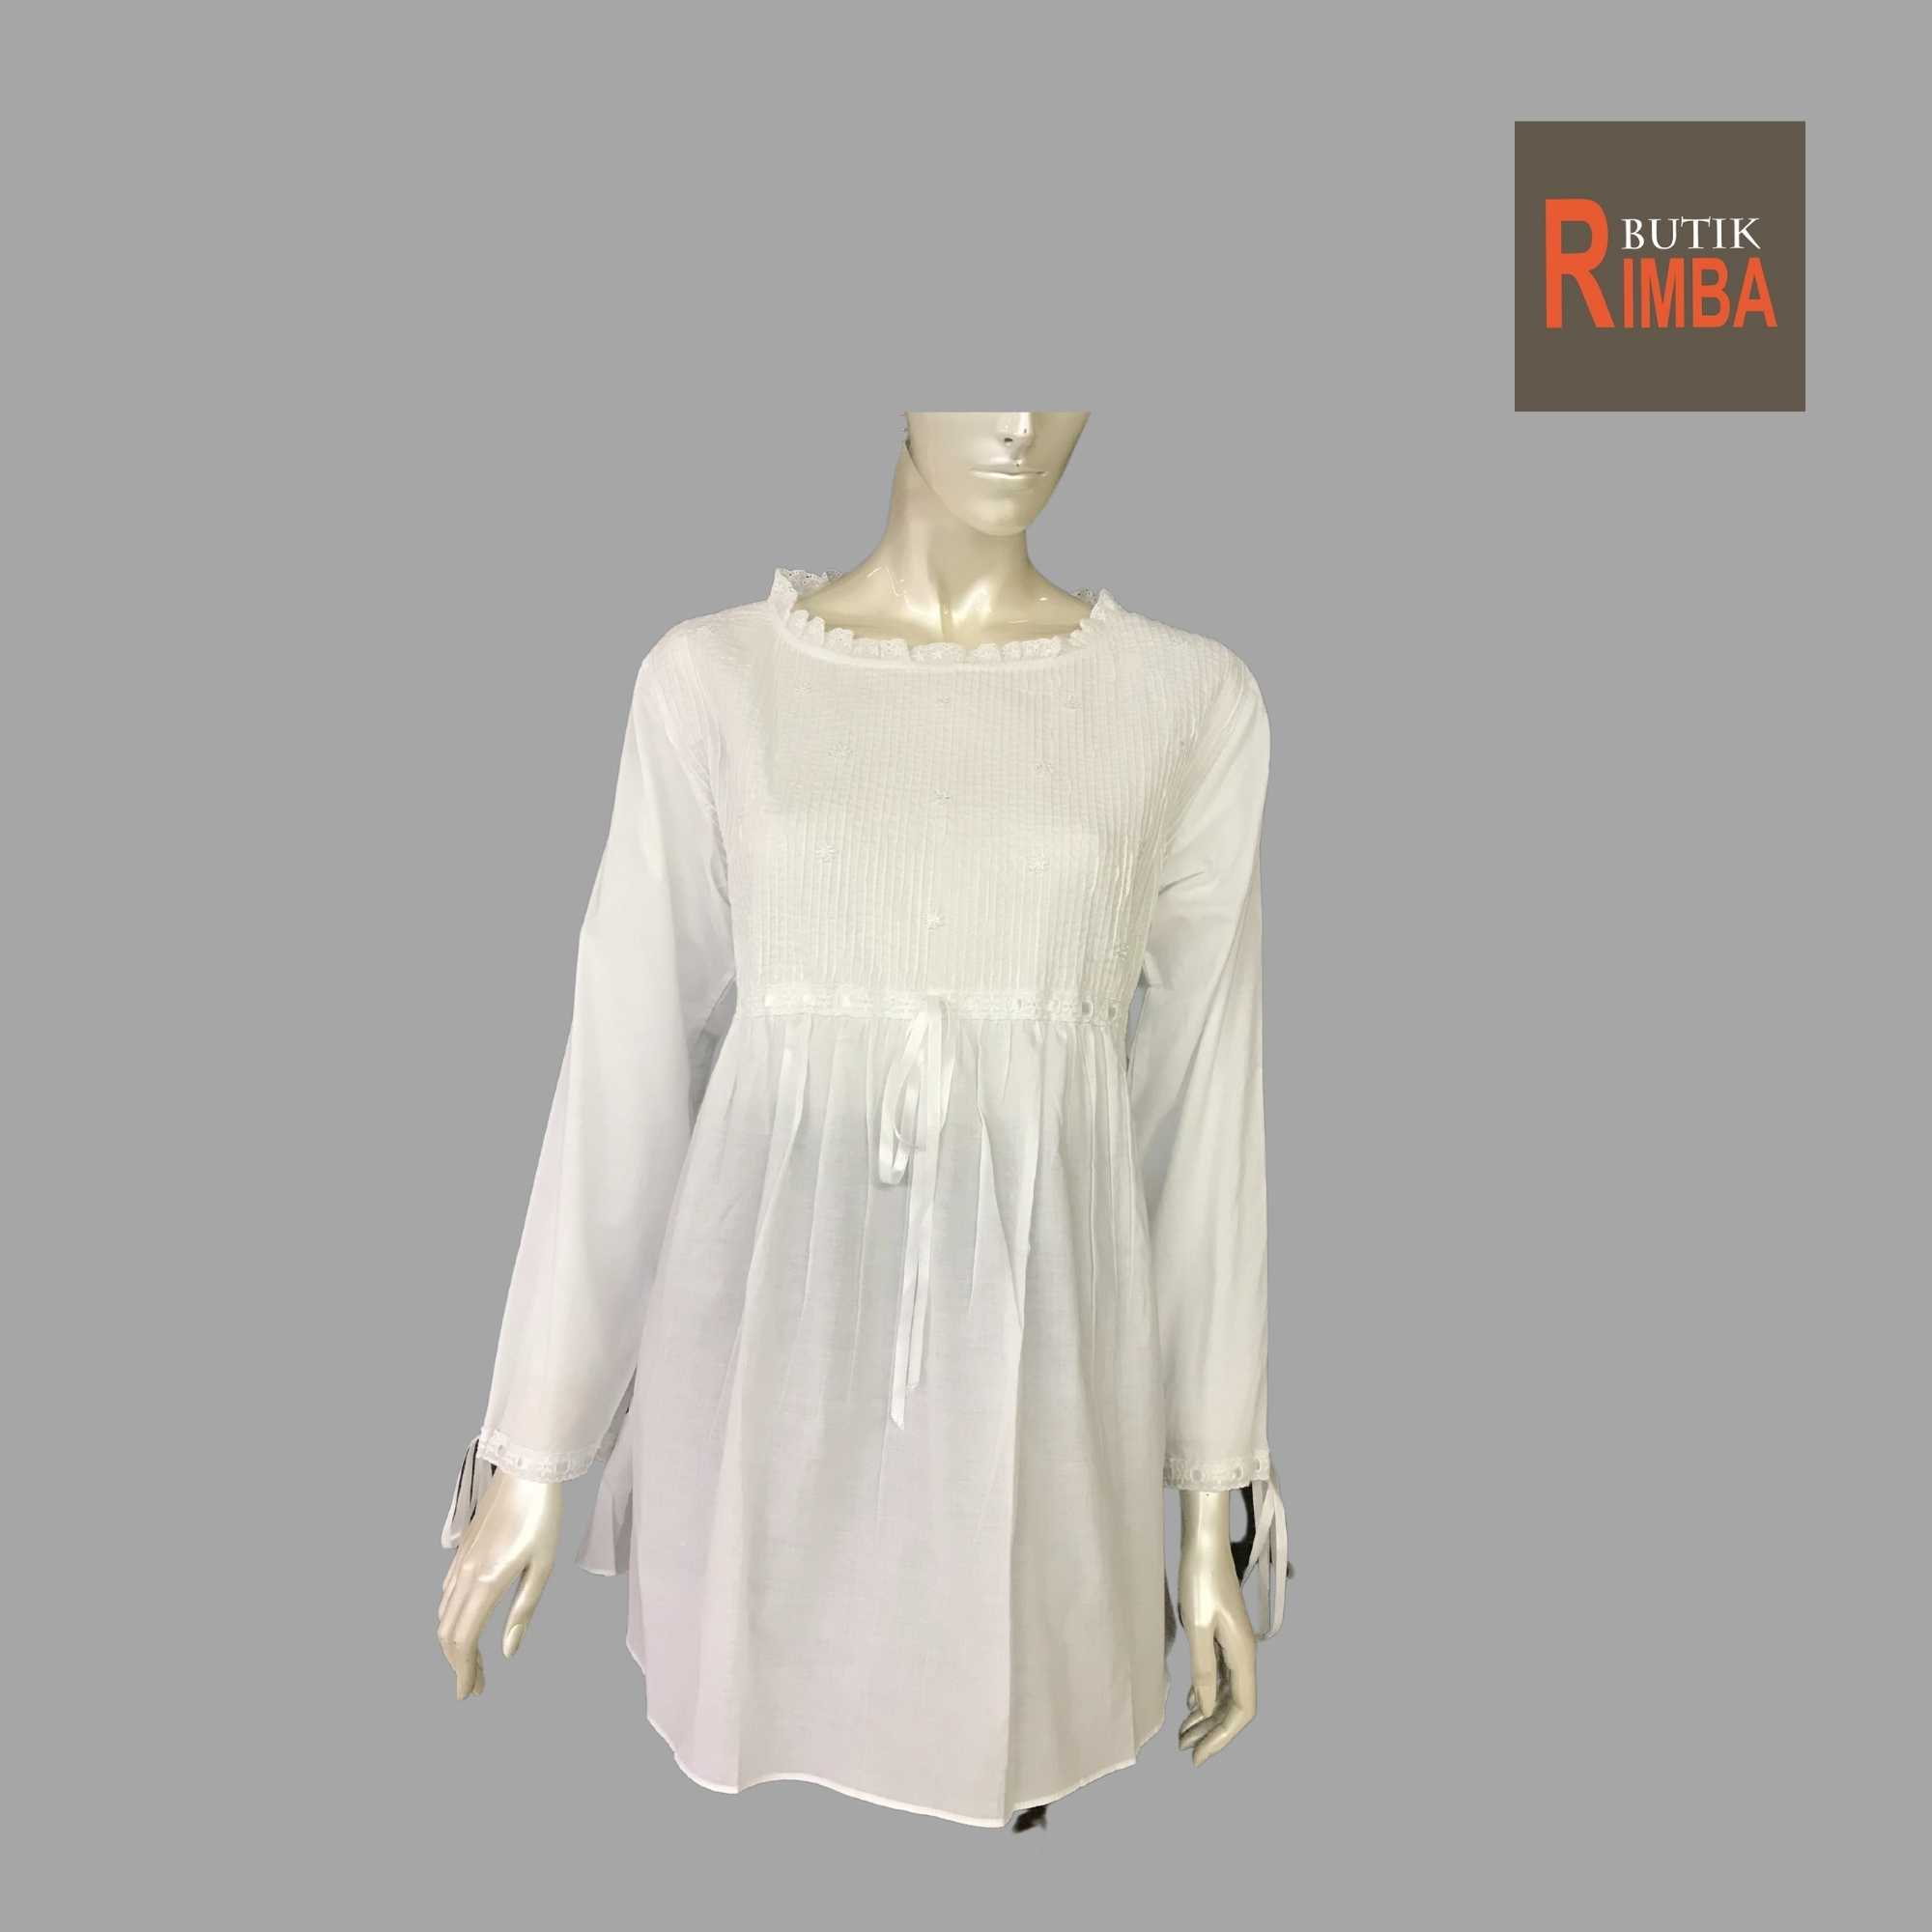 WOMEN CASUAL AND COMFORTABLE WHITE BLOUSE COTTON FREE SIZE PATTERN 24